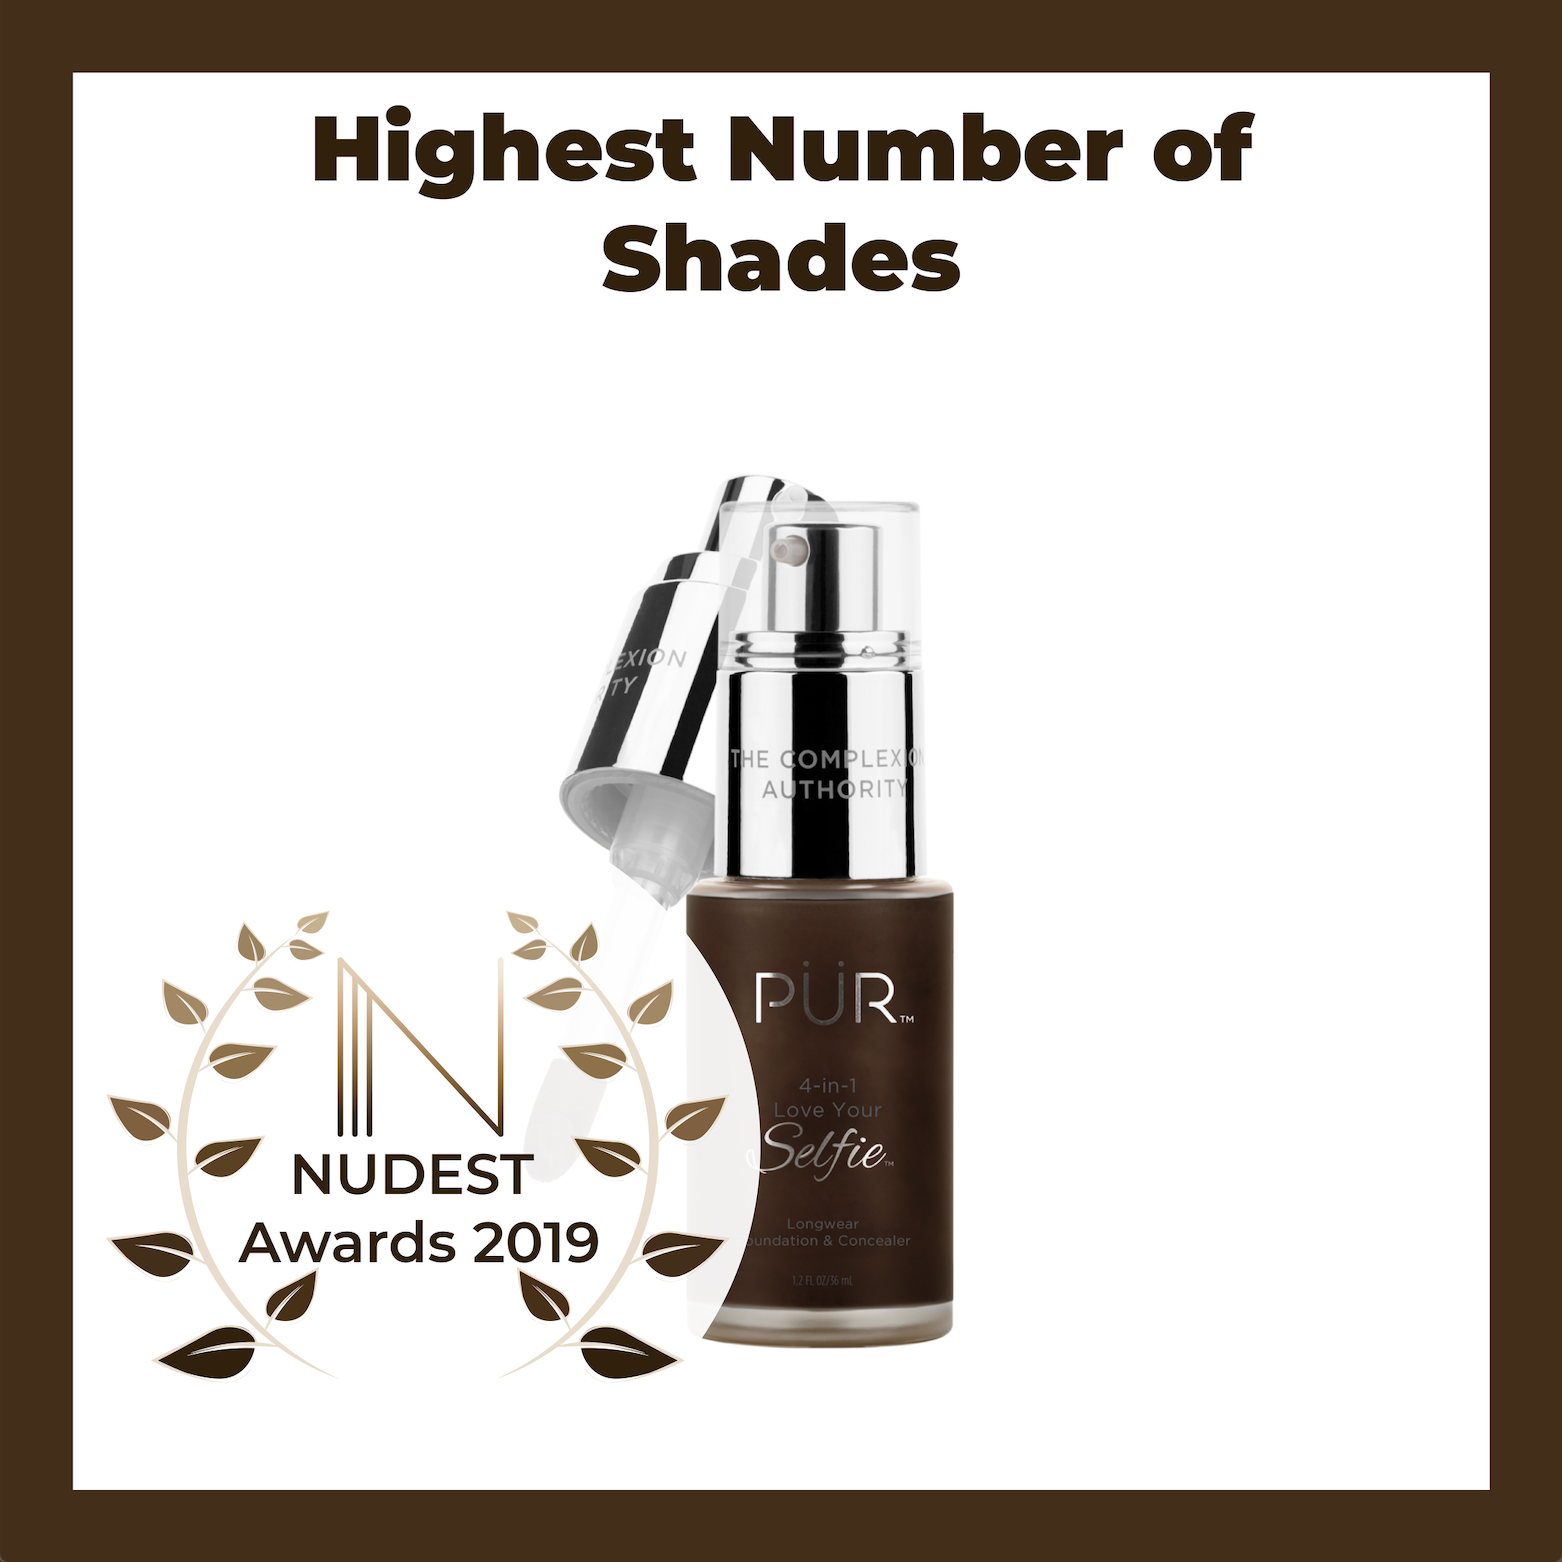 NUDEST Awards PUR 4-in-1 foundation